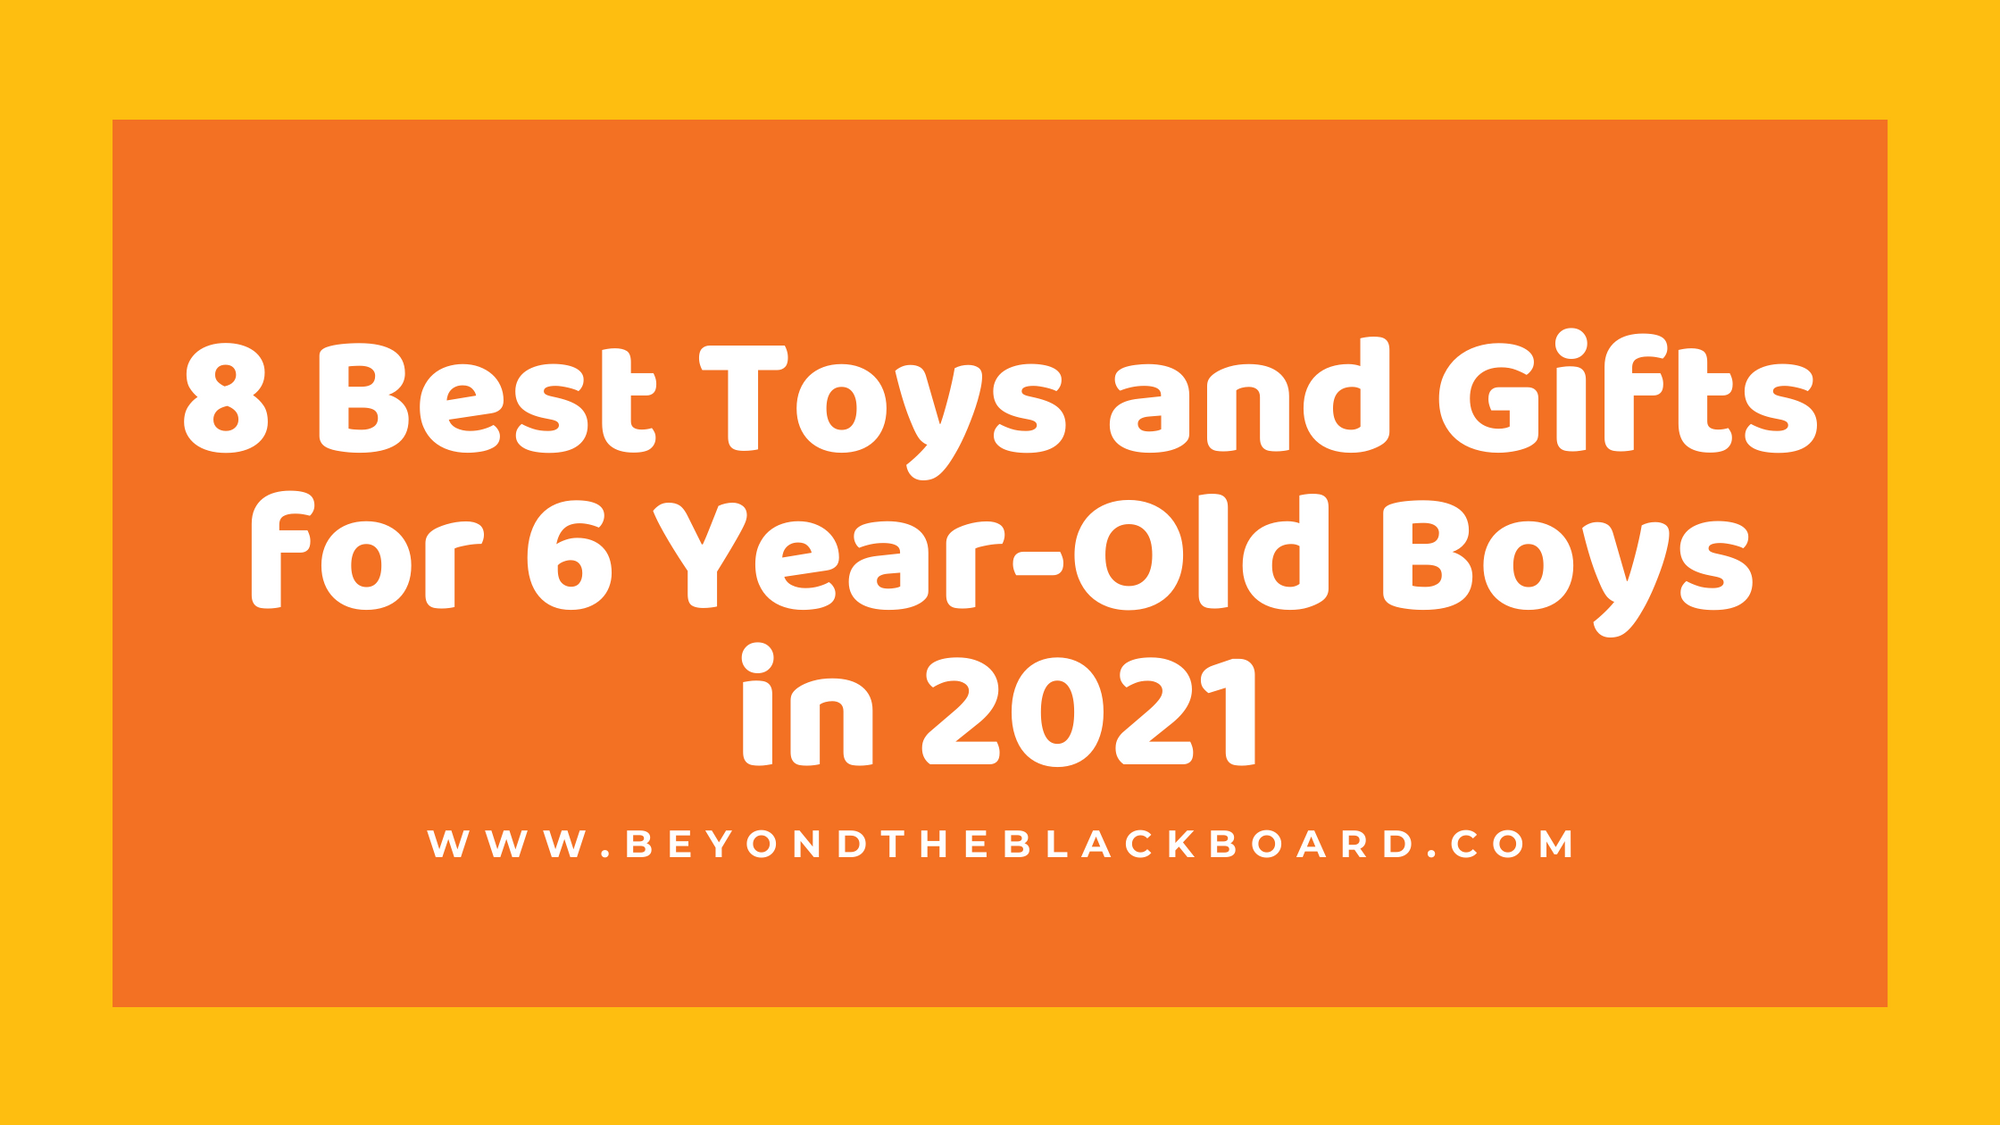 8 Best Toys and Gifts for 6 Year-Old Boys in 2021, www.beyondtheblackboard.com